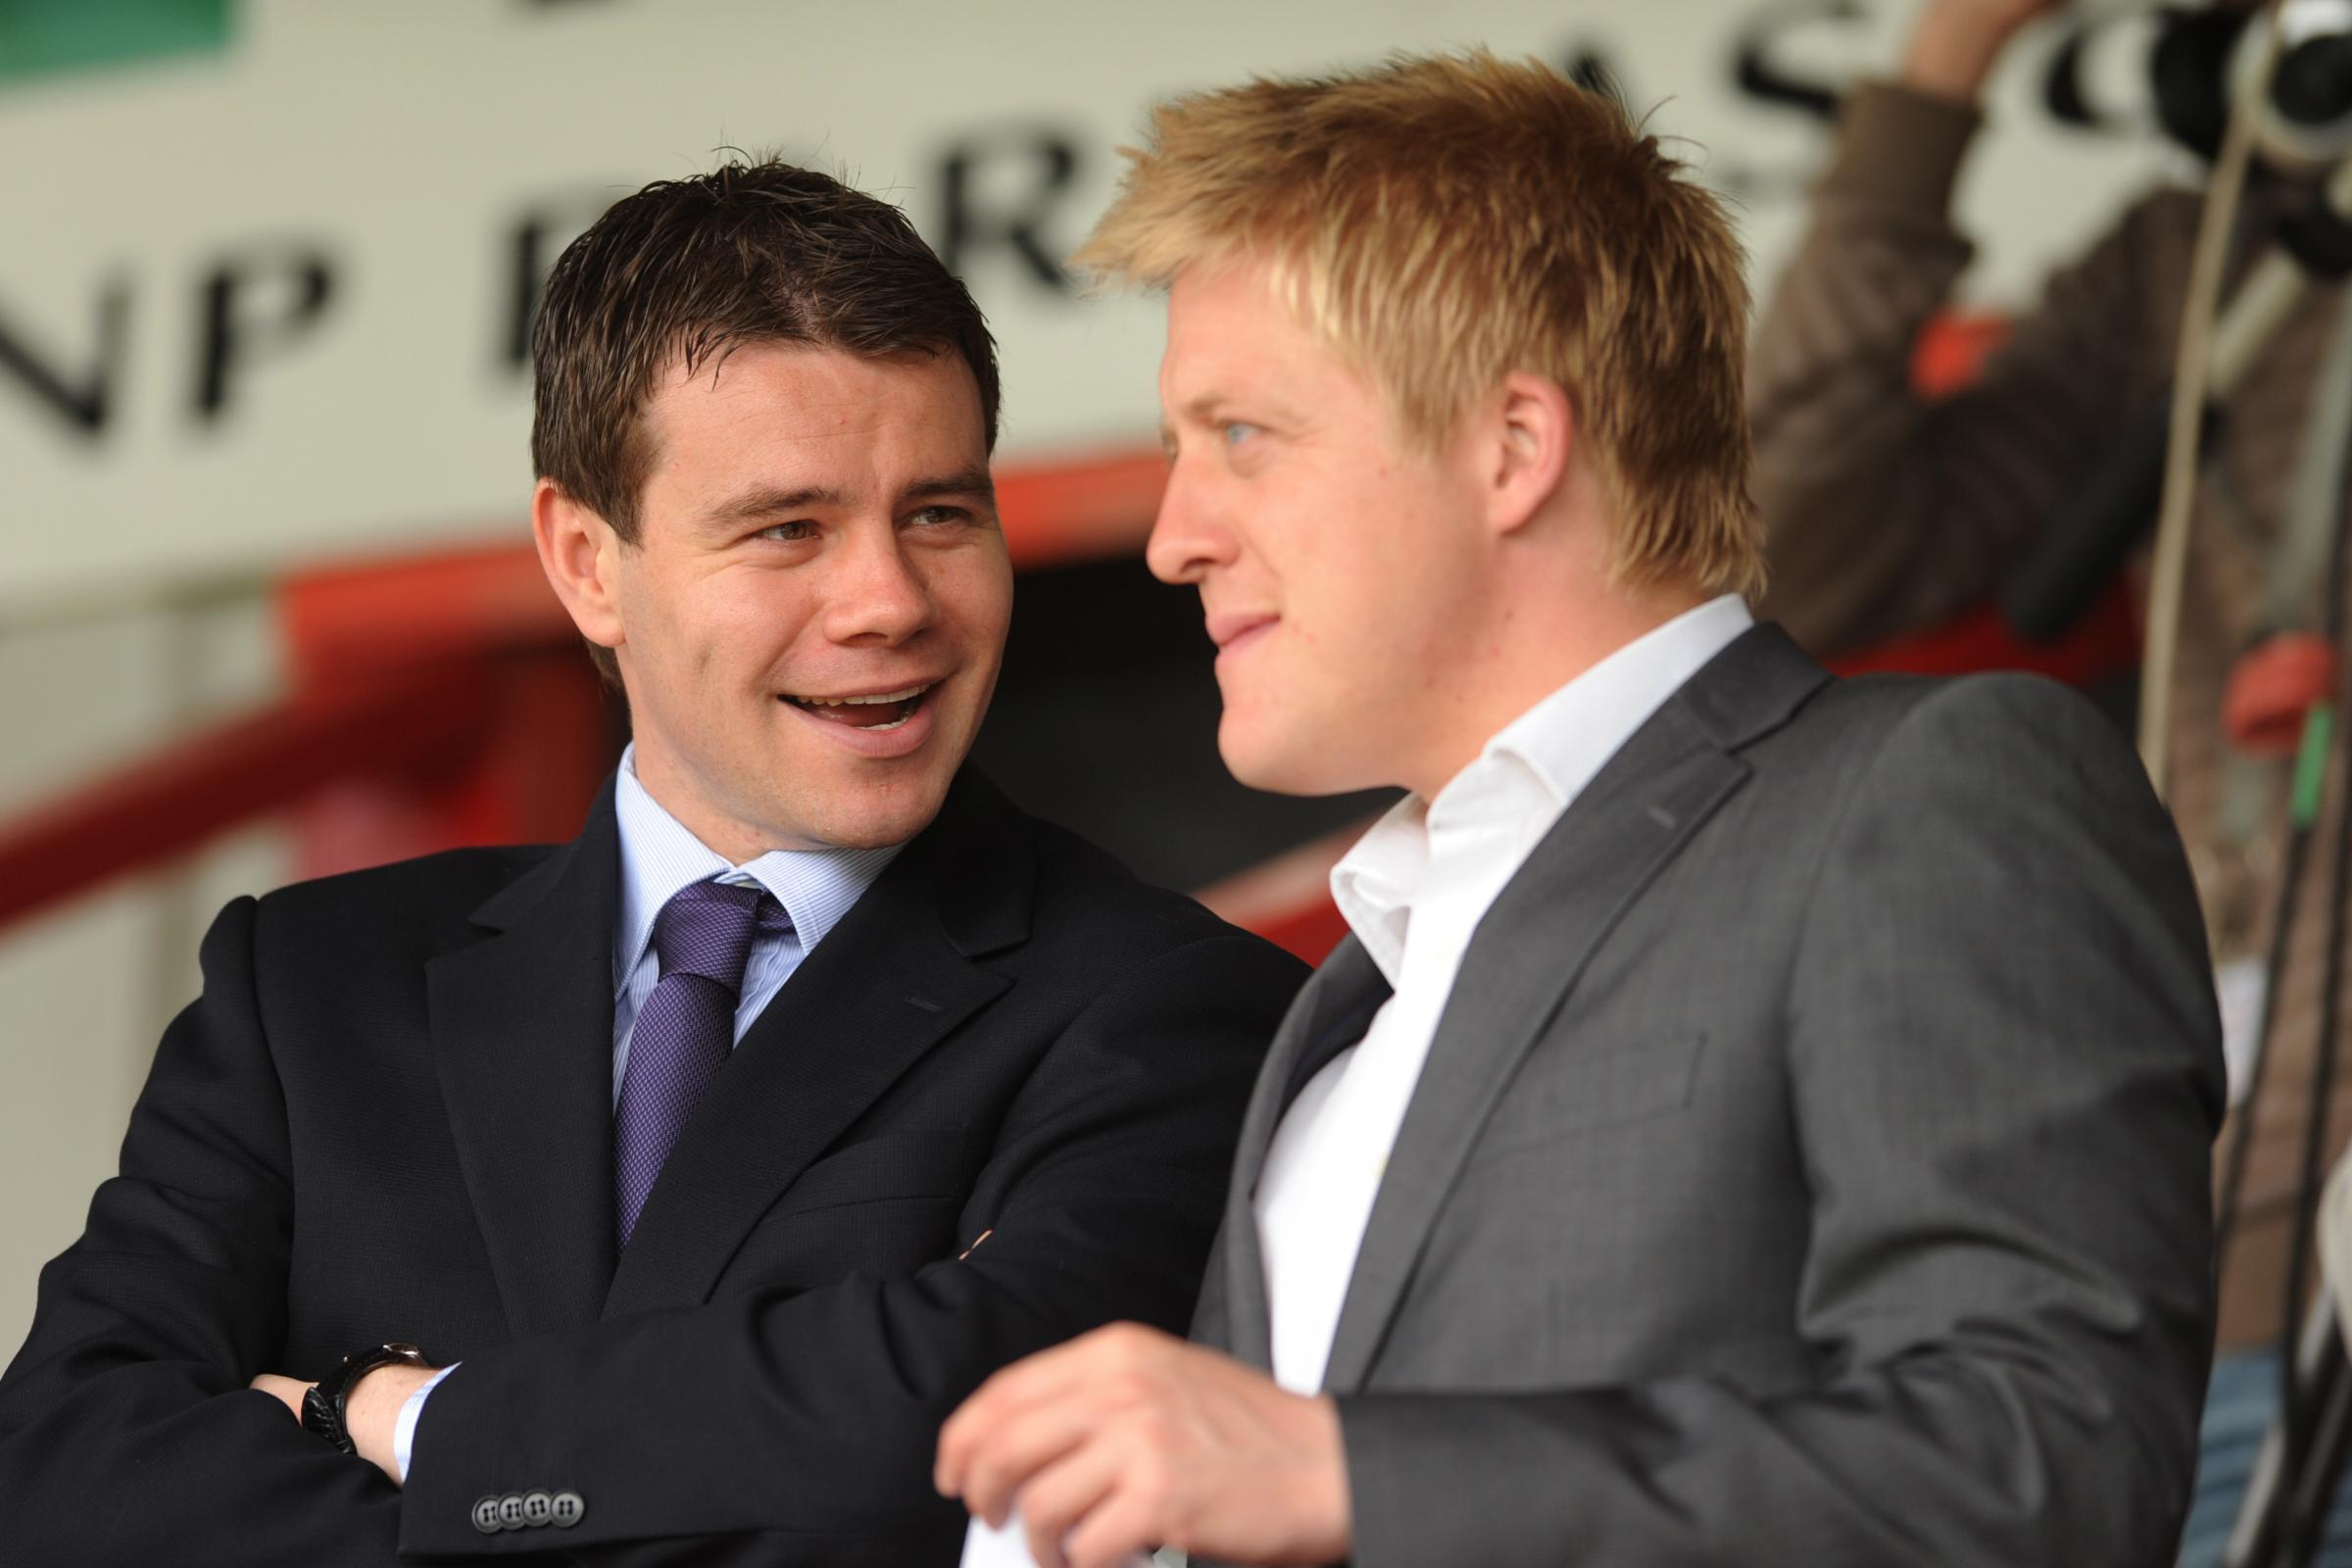 Watford's former director of football Ross Wilson is leaving Southampton for Rangers